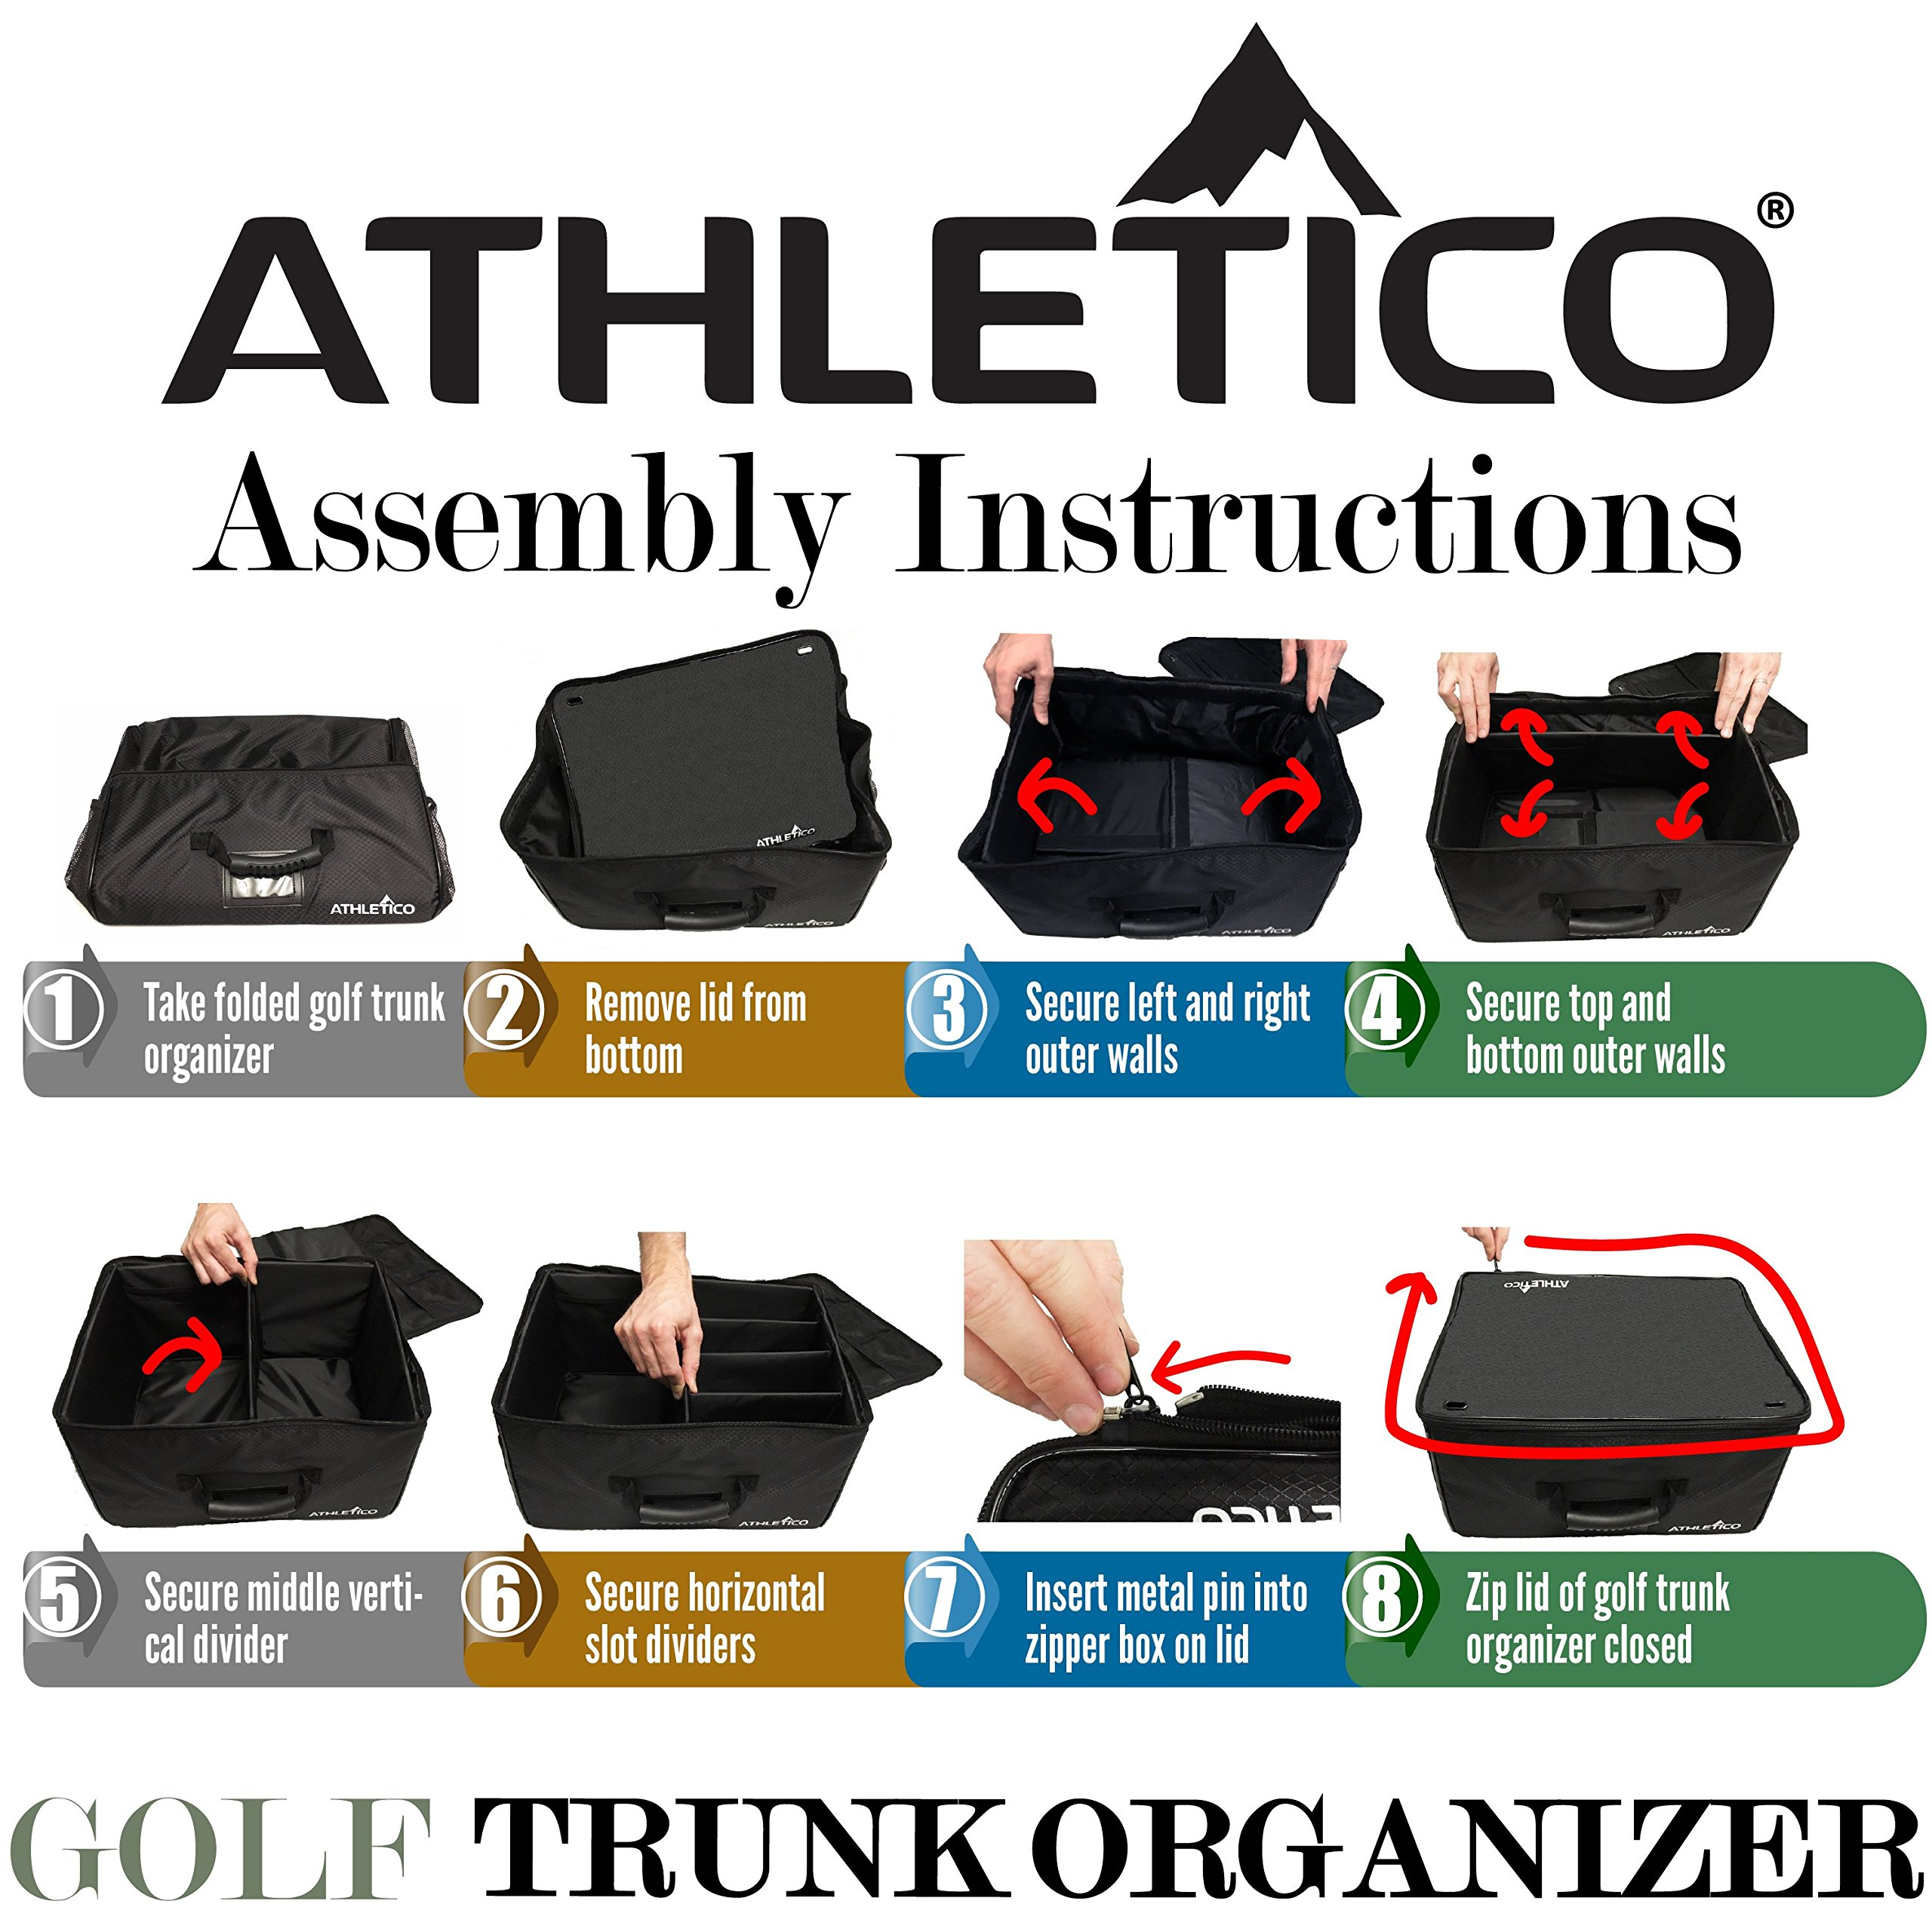 Athletico Golf Trunk Organizer Storage - Car Golf Locker To Store Golf Accessories | Collapsible When Not In Use by Athletico (Image #9)